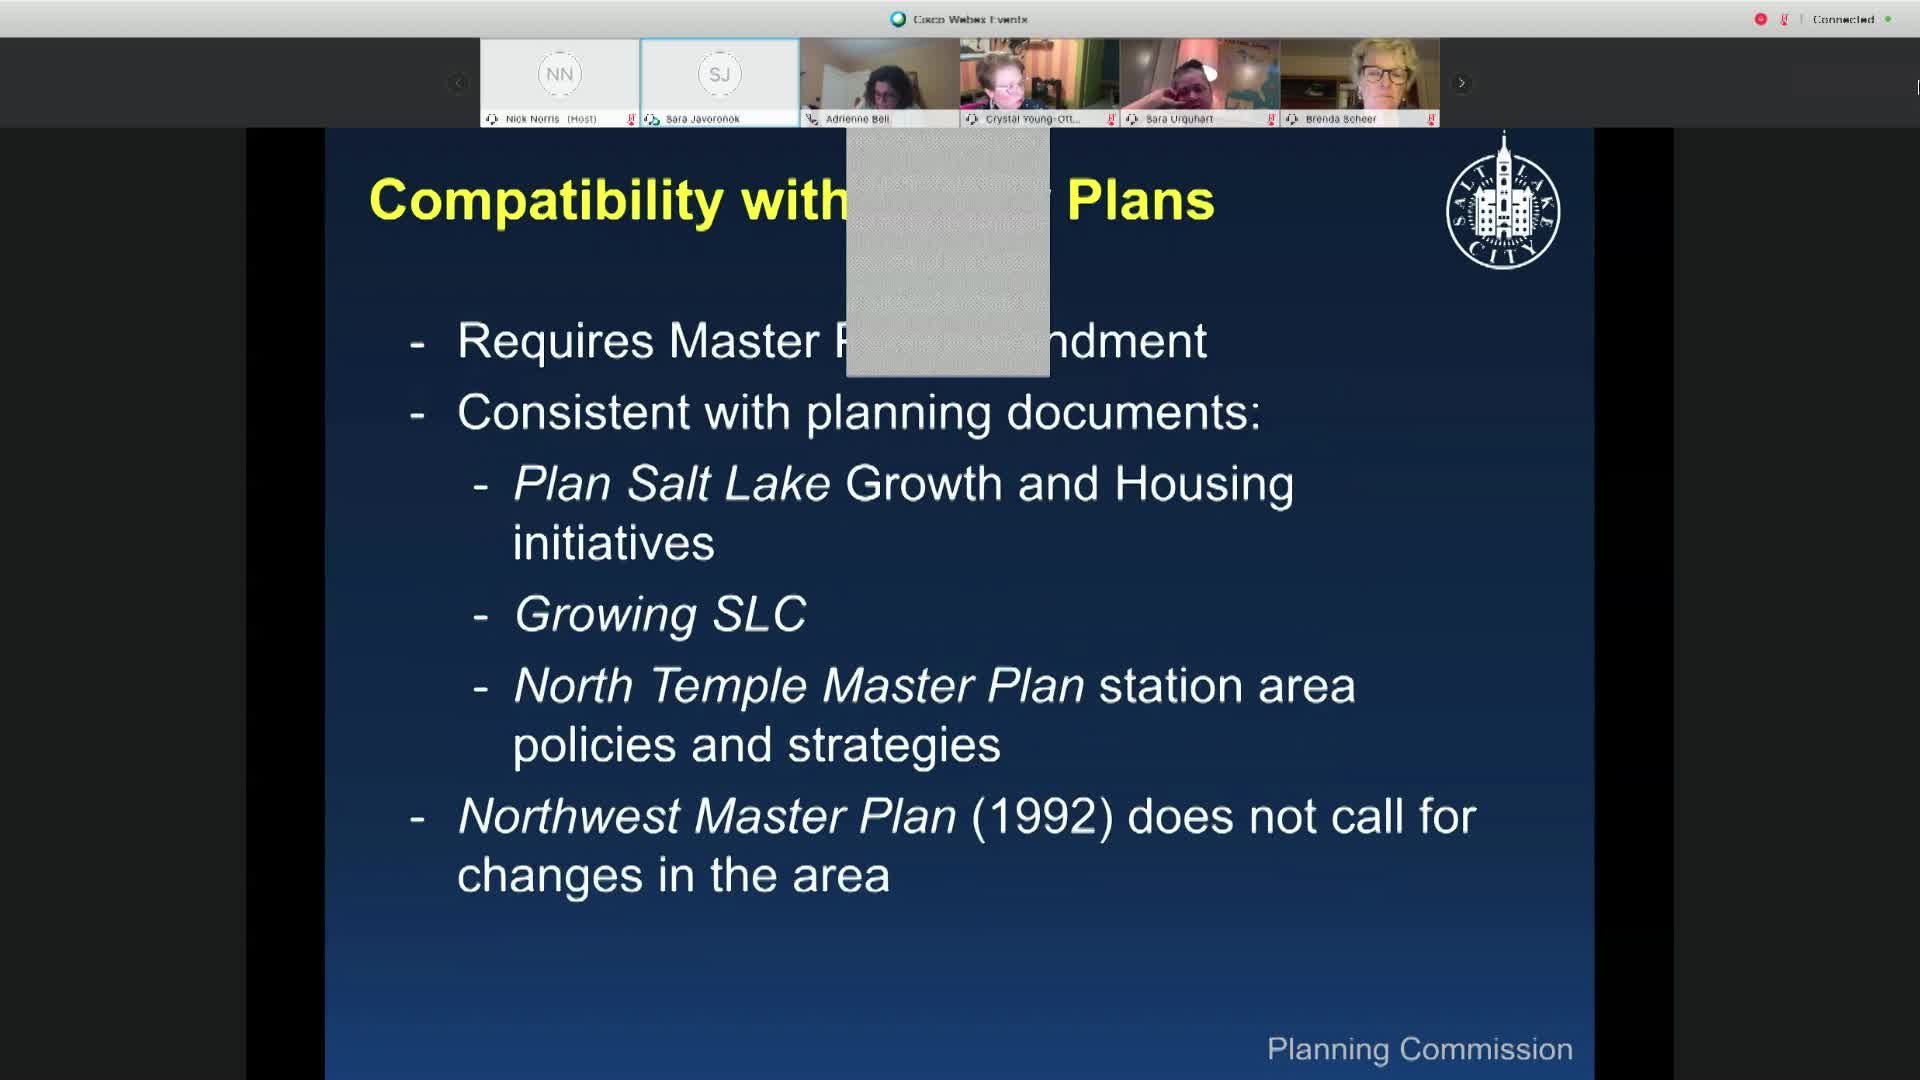 Planning Commission Meeting - 04/08/2020